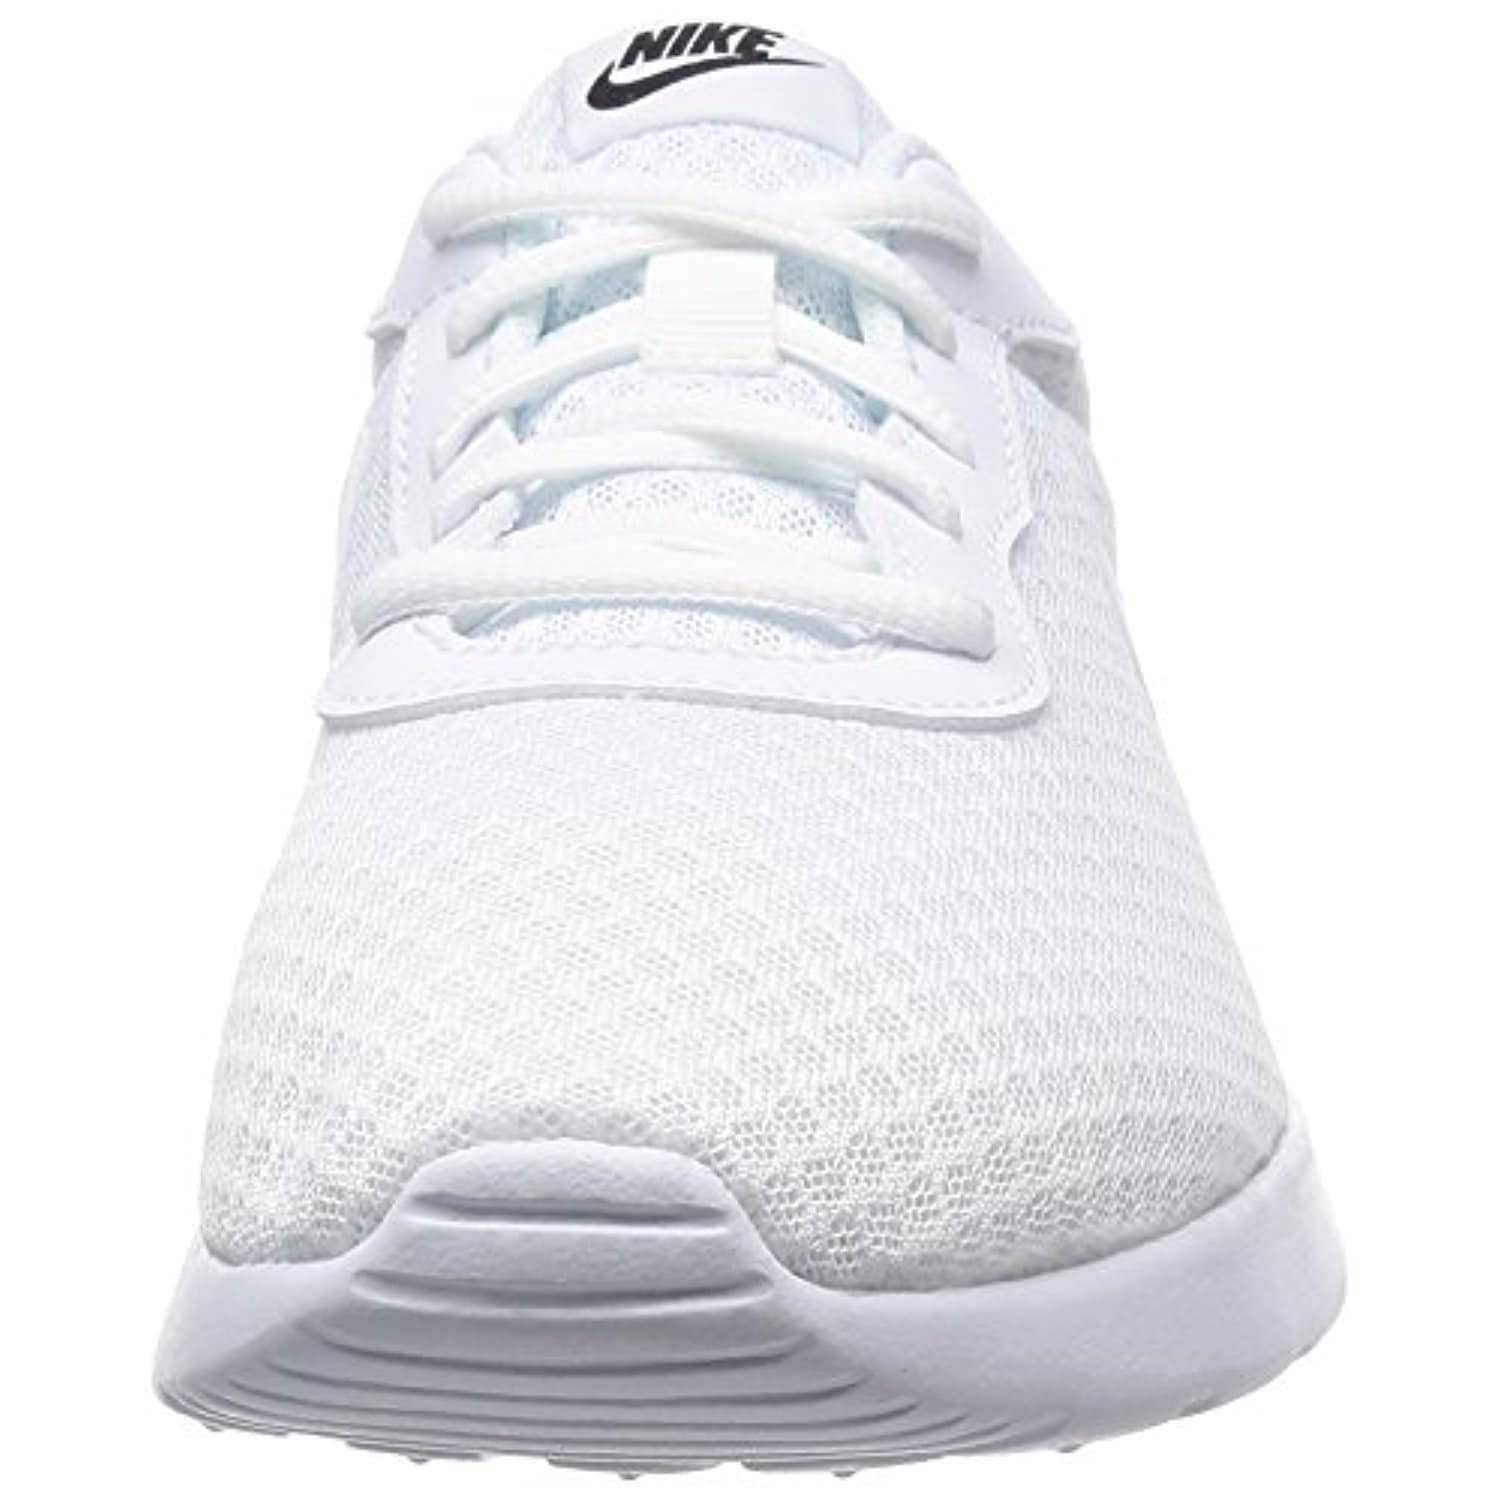 Nike Mens Tanjun Athletic Sneaker White/White-Black 812654-110 13 - white  white black - Free Shipping Today - Overstock.com - 24409799